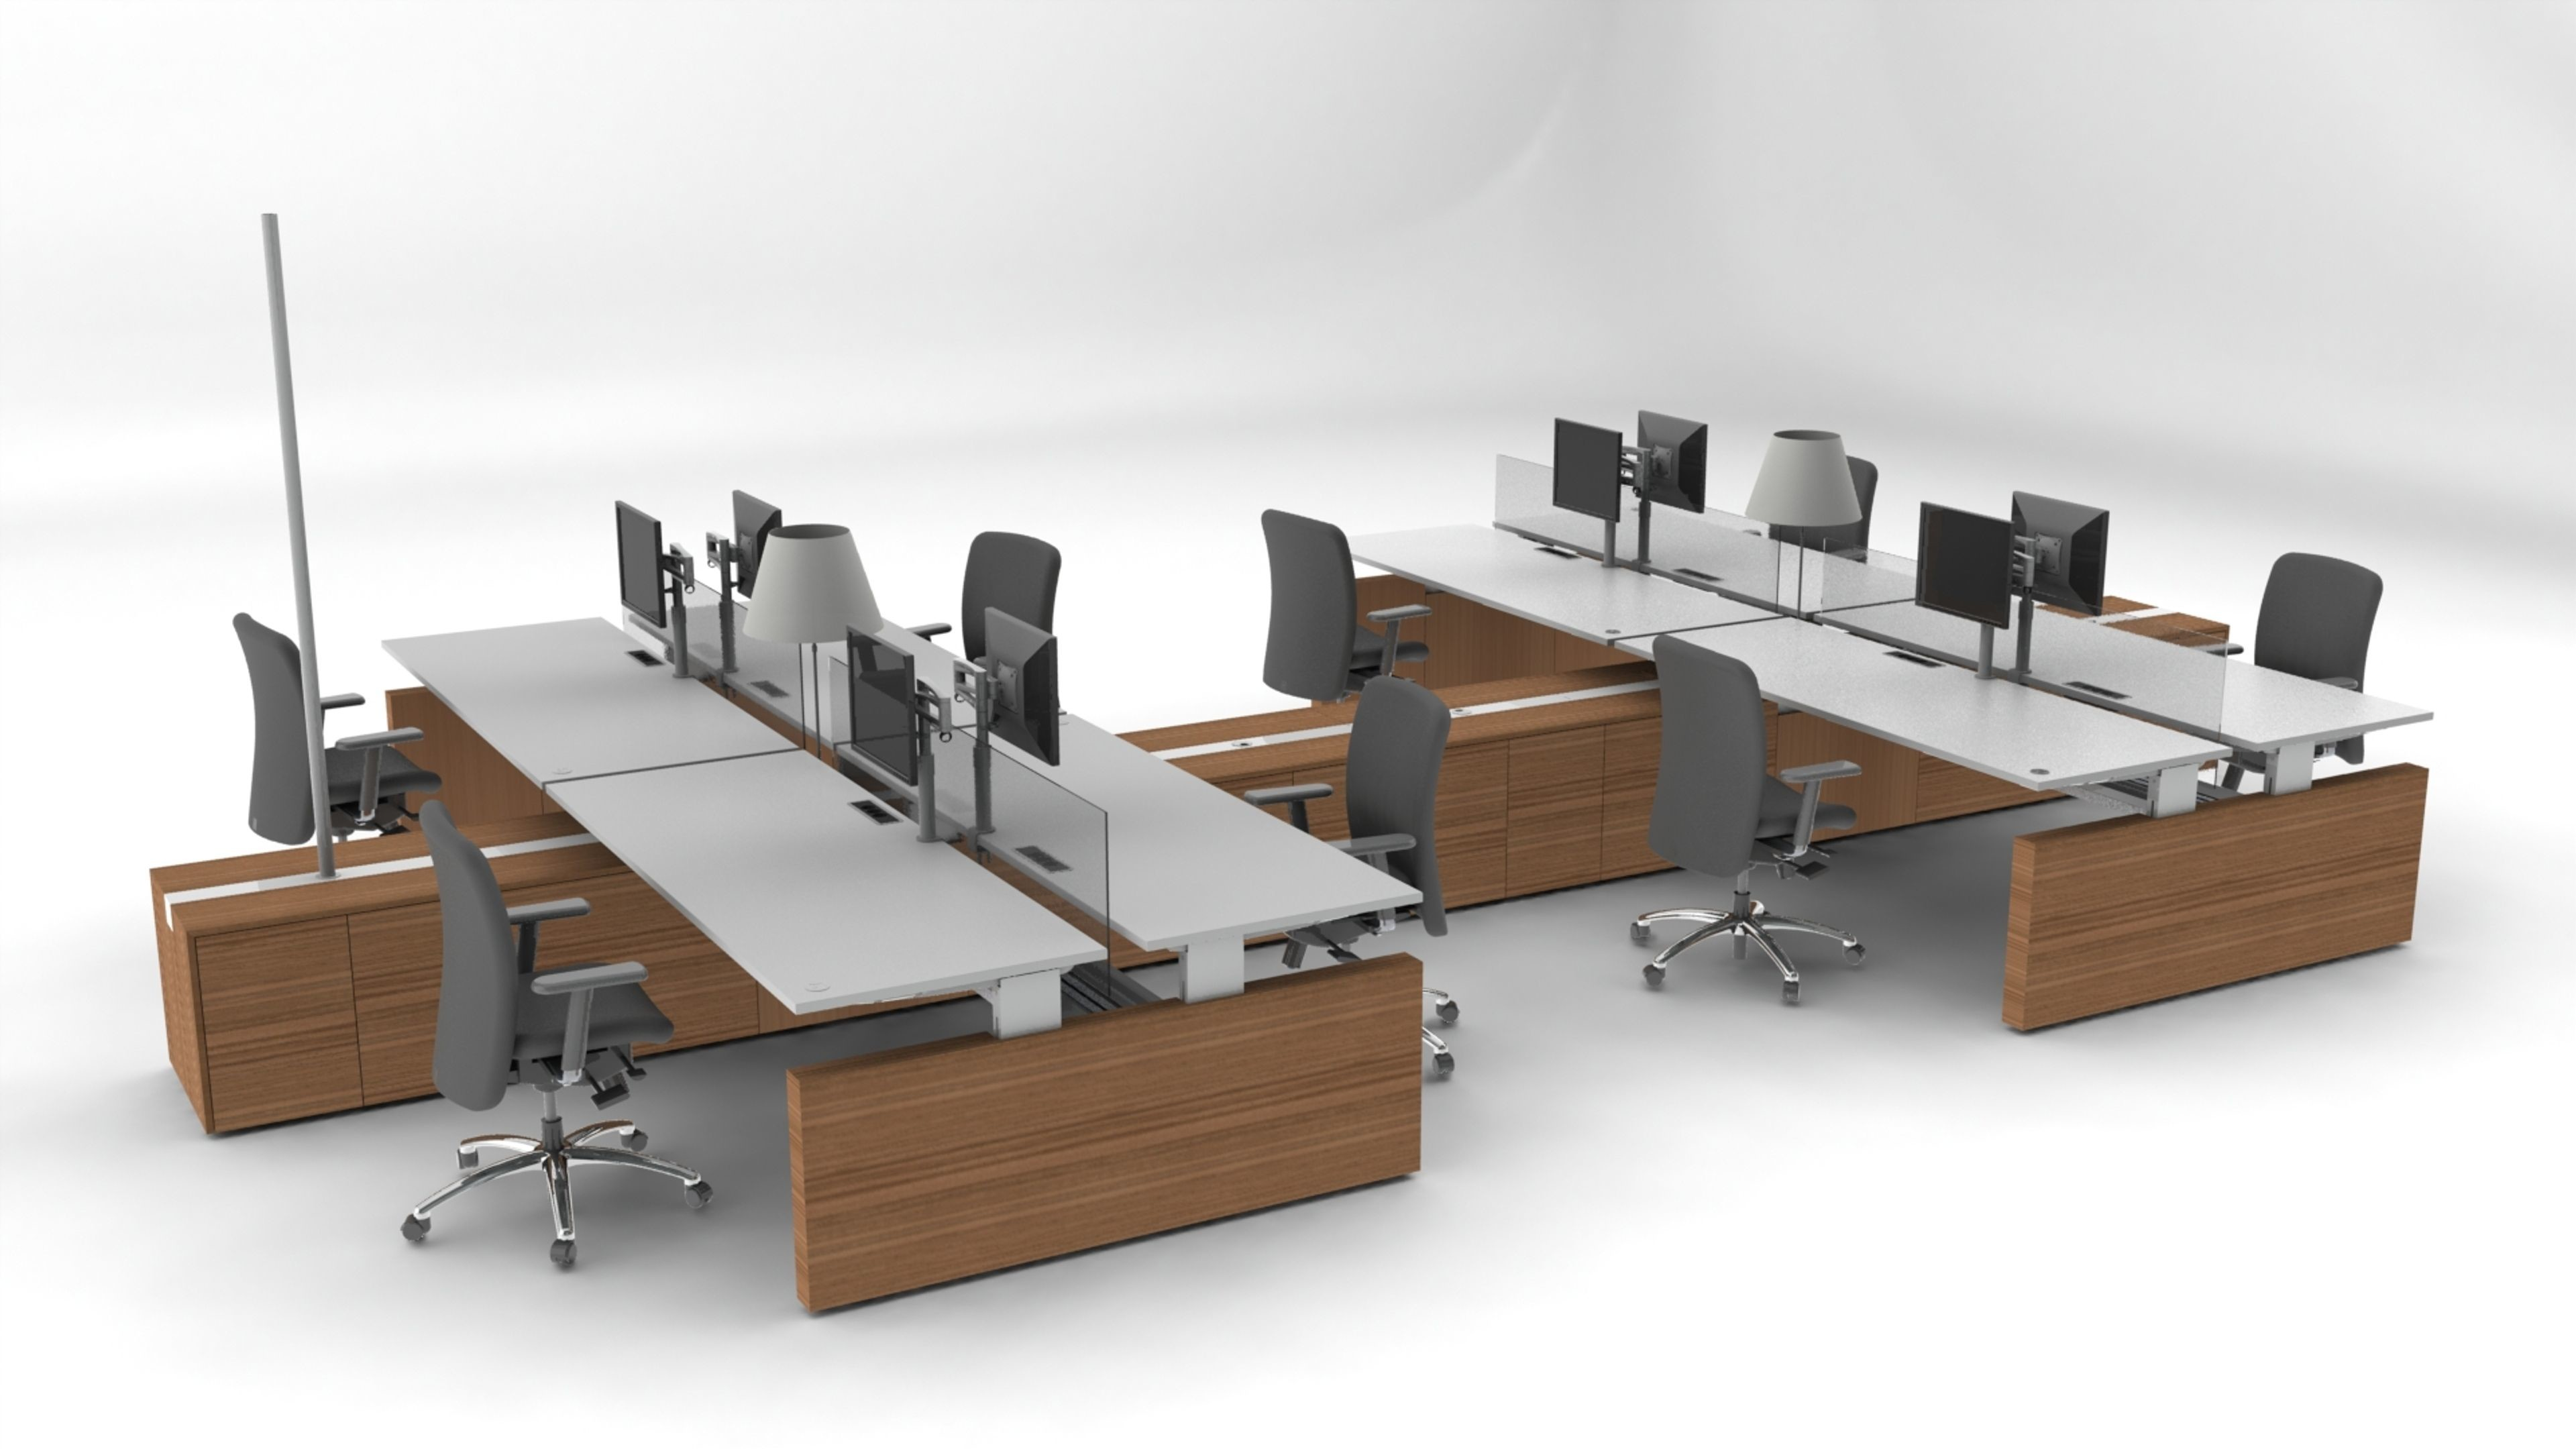 Res: 3840x2160, Modular Office Furniture Desktop Wallpaper HD #jmnzn3  px 1.81 MB  Furniture Home Design